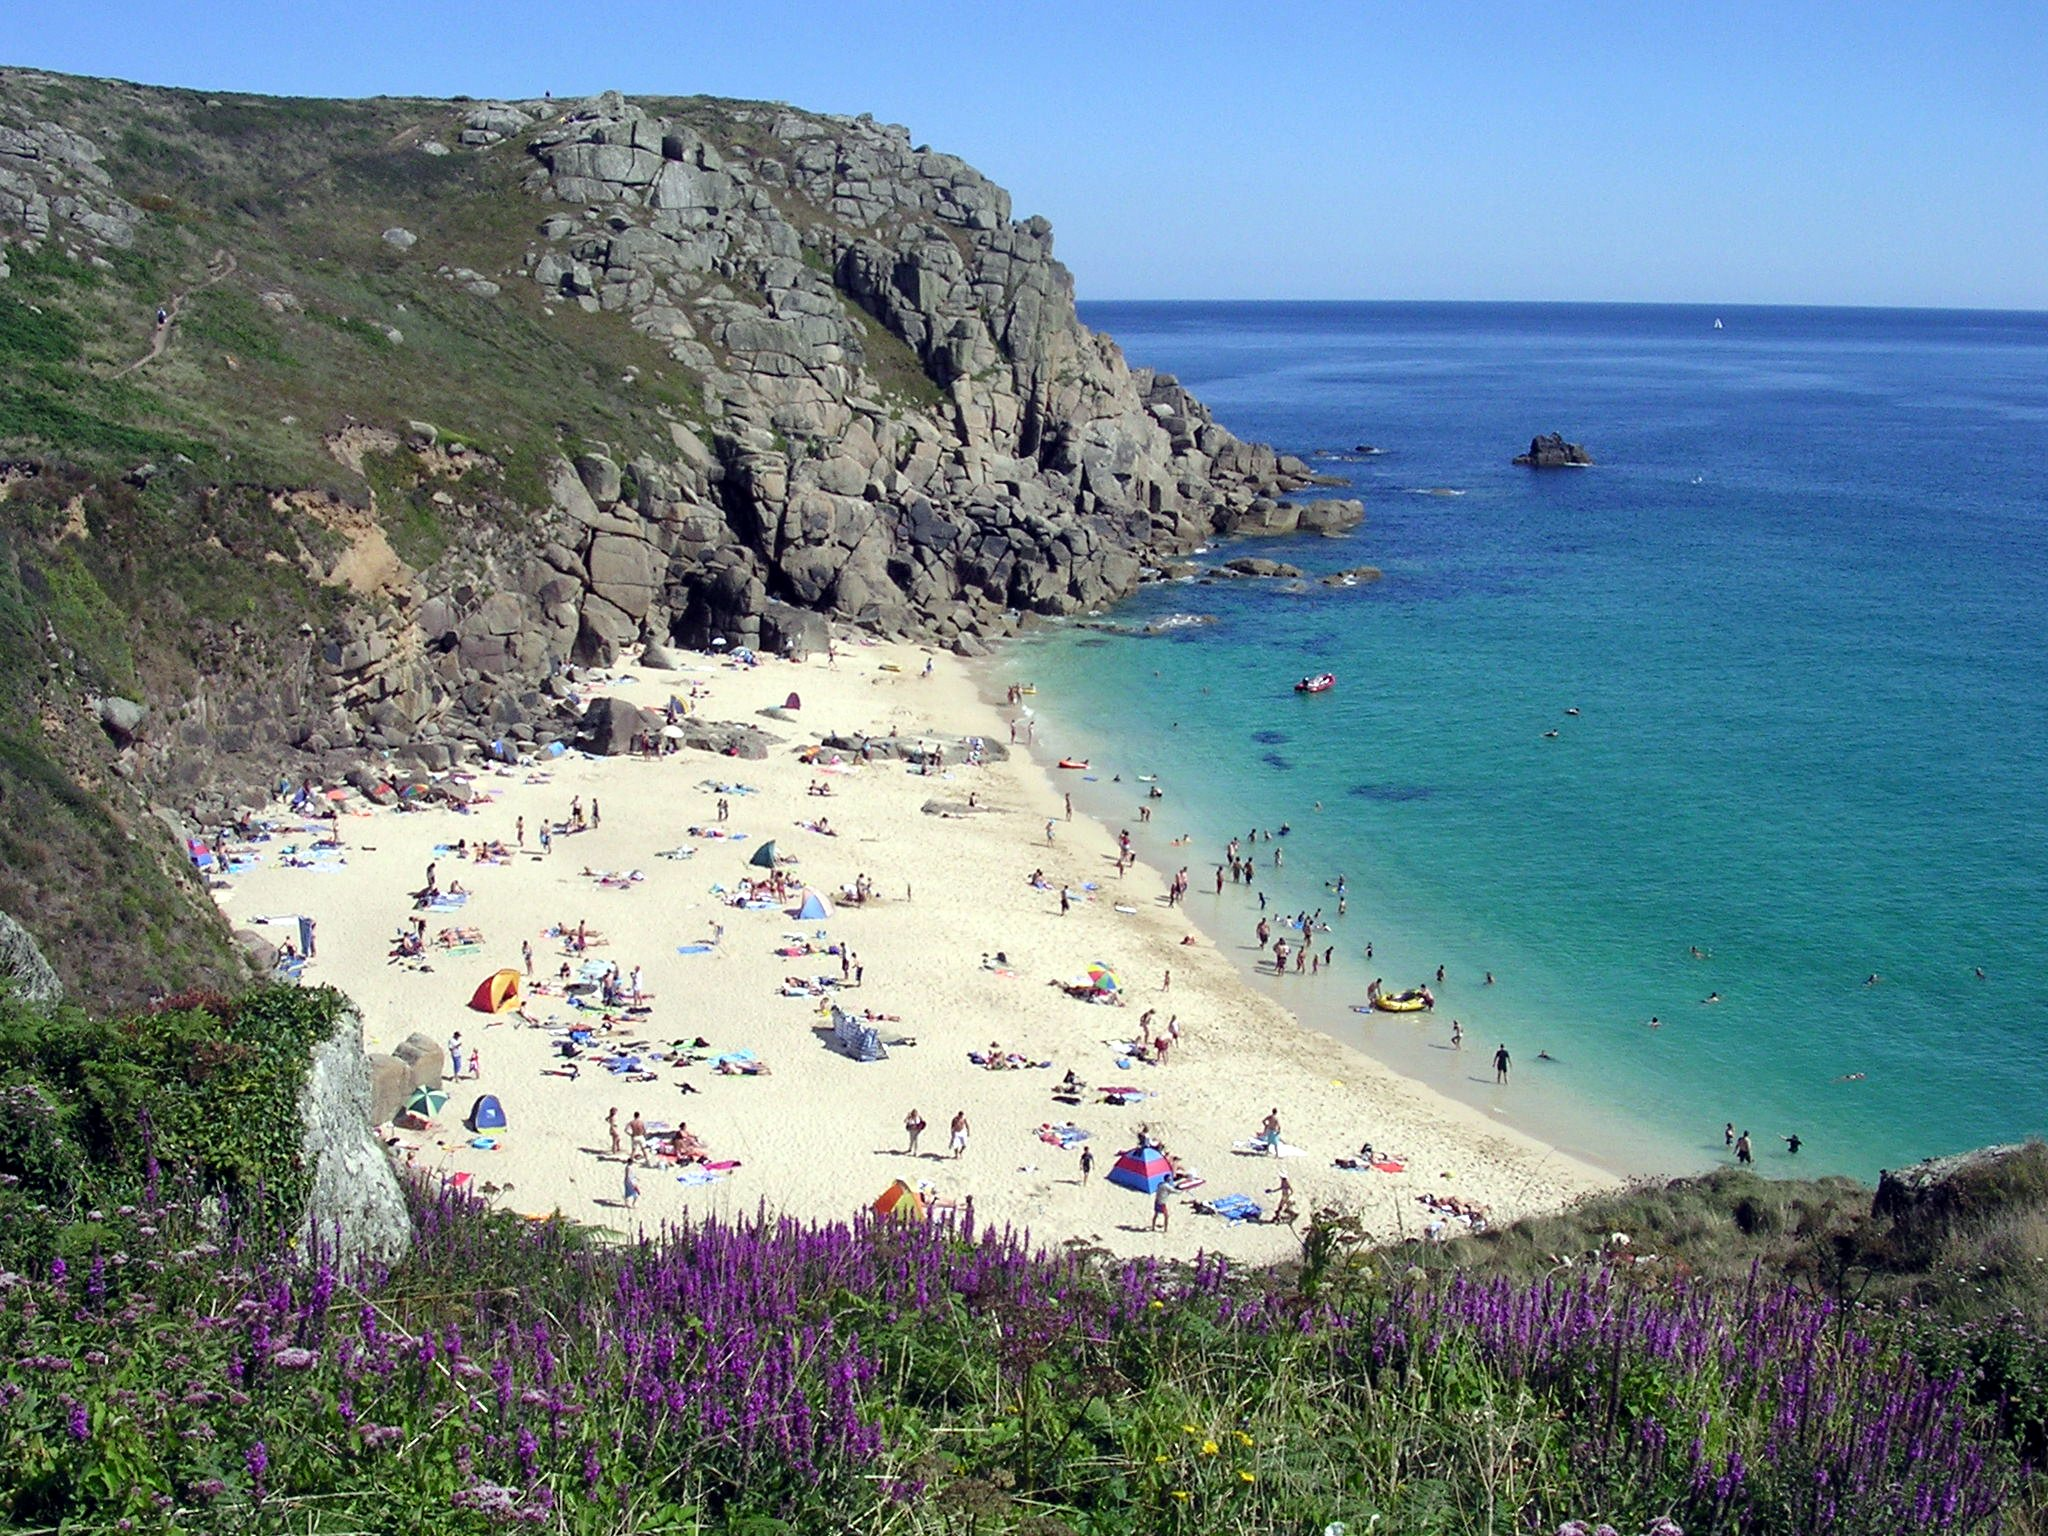 The best UK beach breaks, like this one in Cornwall, offer stunning visages that rival the Mediterranean ... if only the weather were so kind!